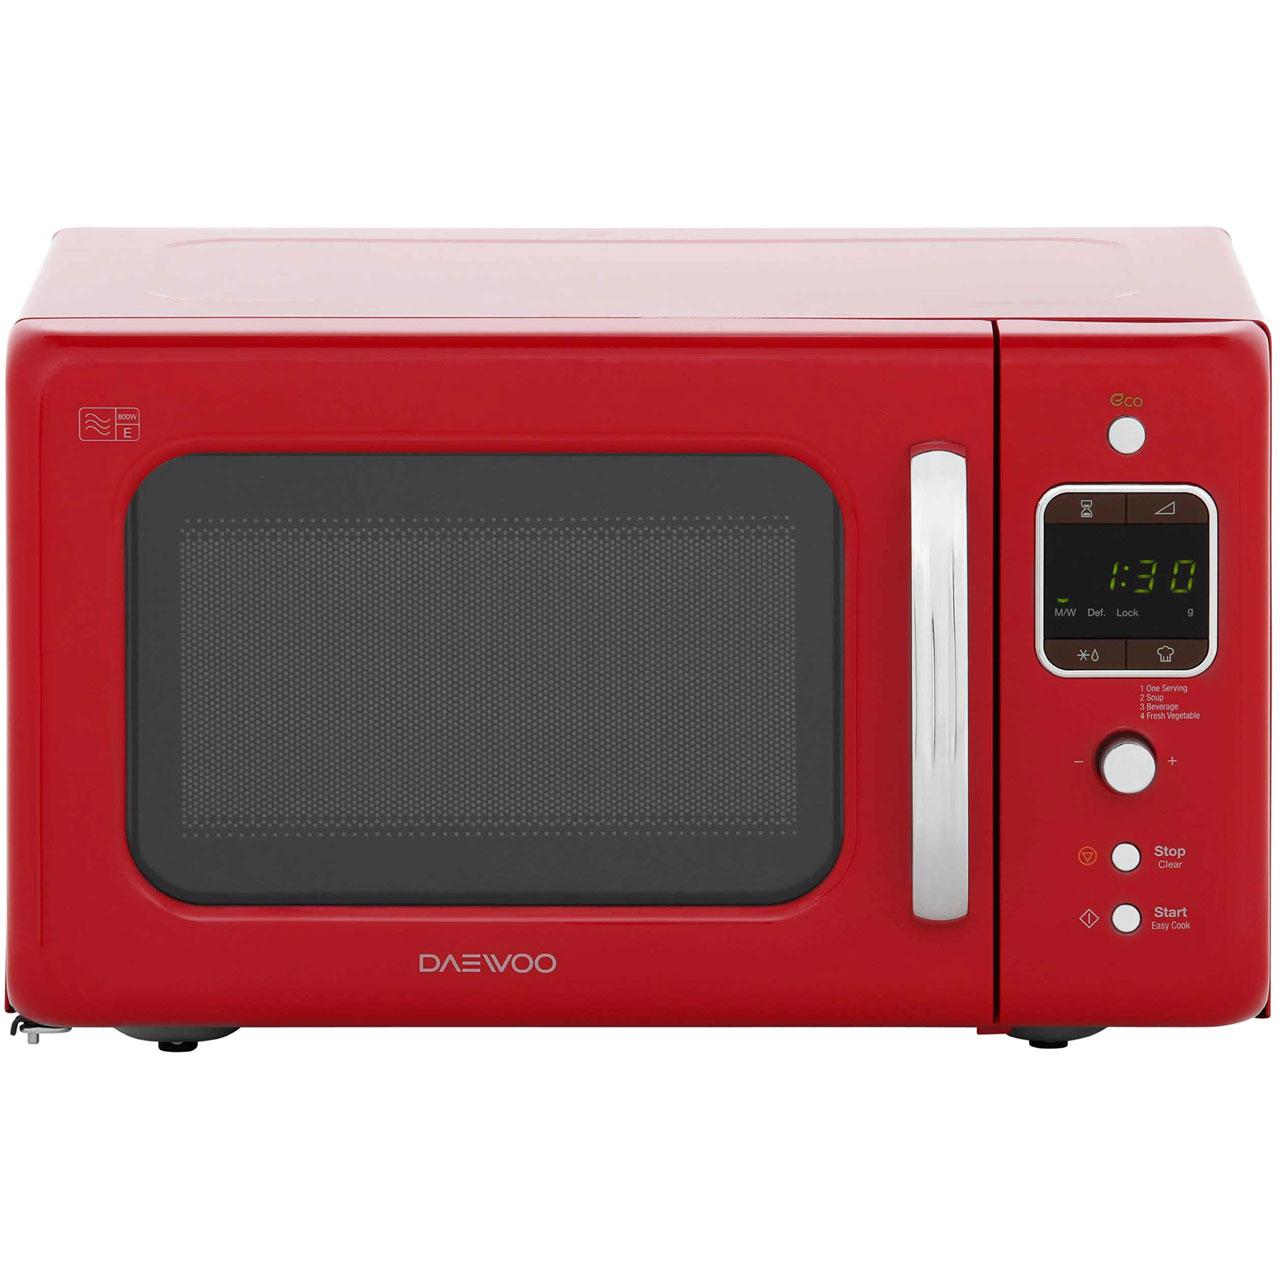 Breville Red Microwave Bestmicrowave